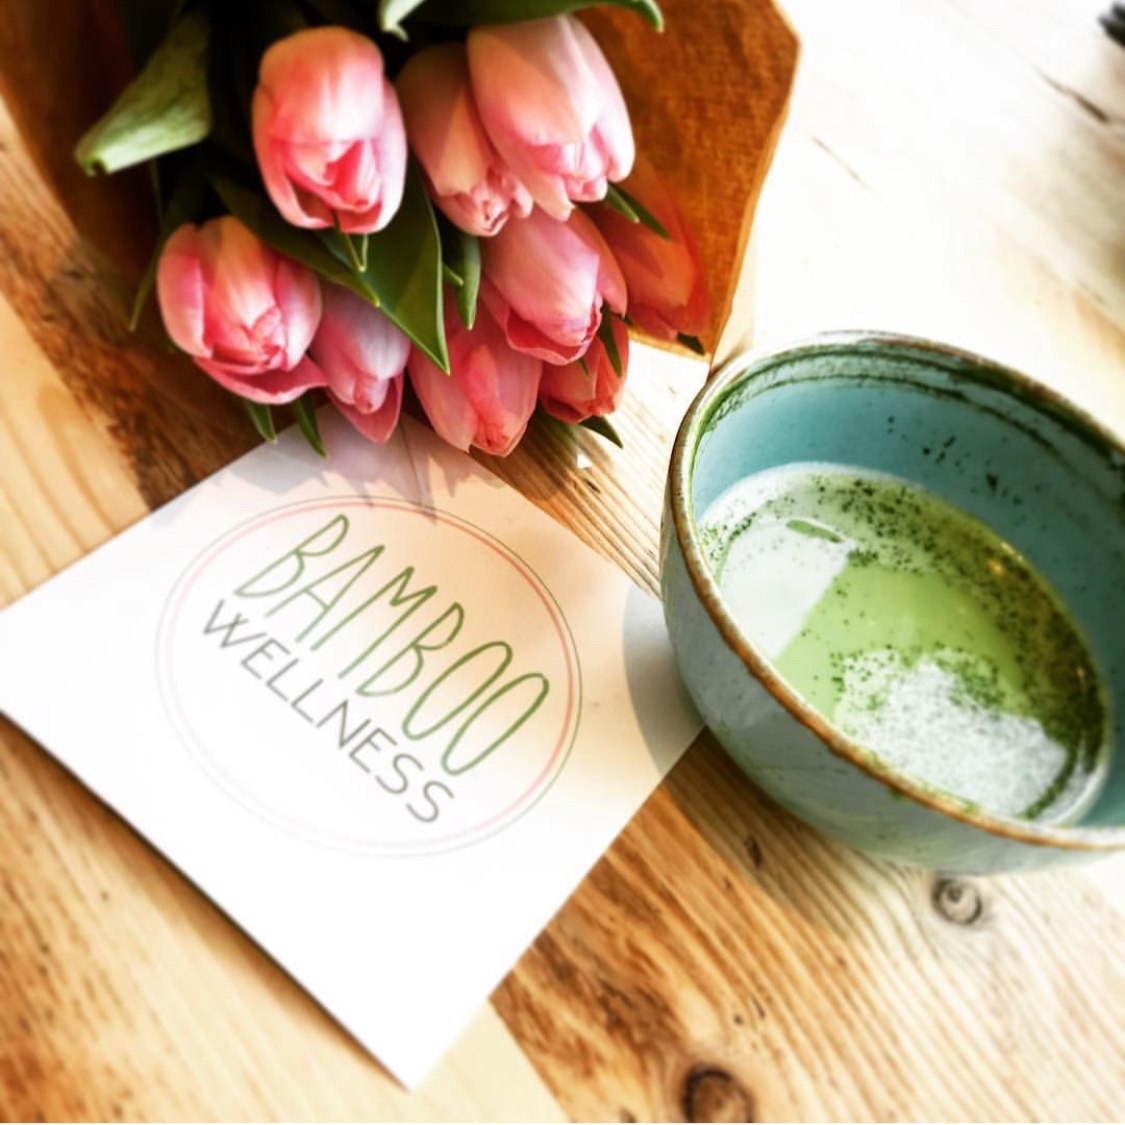 5 x Yoga Classes - Not only does the wonderful Bamboo Wellness in Wandsworth offer excellent classes, it has the most wonderful cafe, which is bright, fresh and really welcoming… and the coffee is top notch!